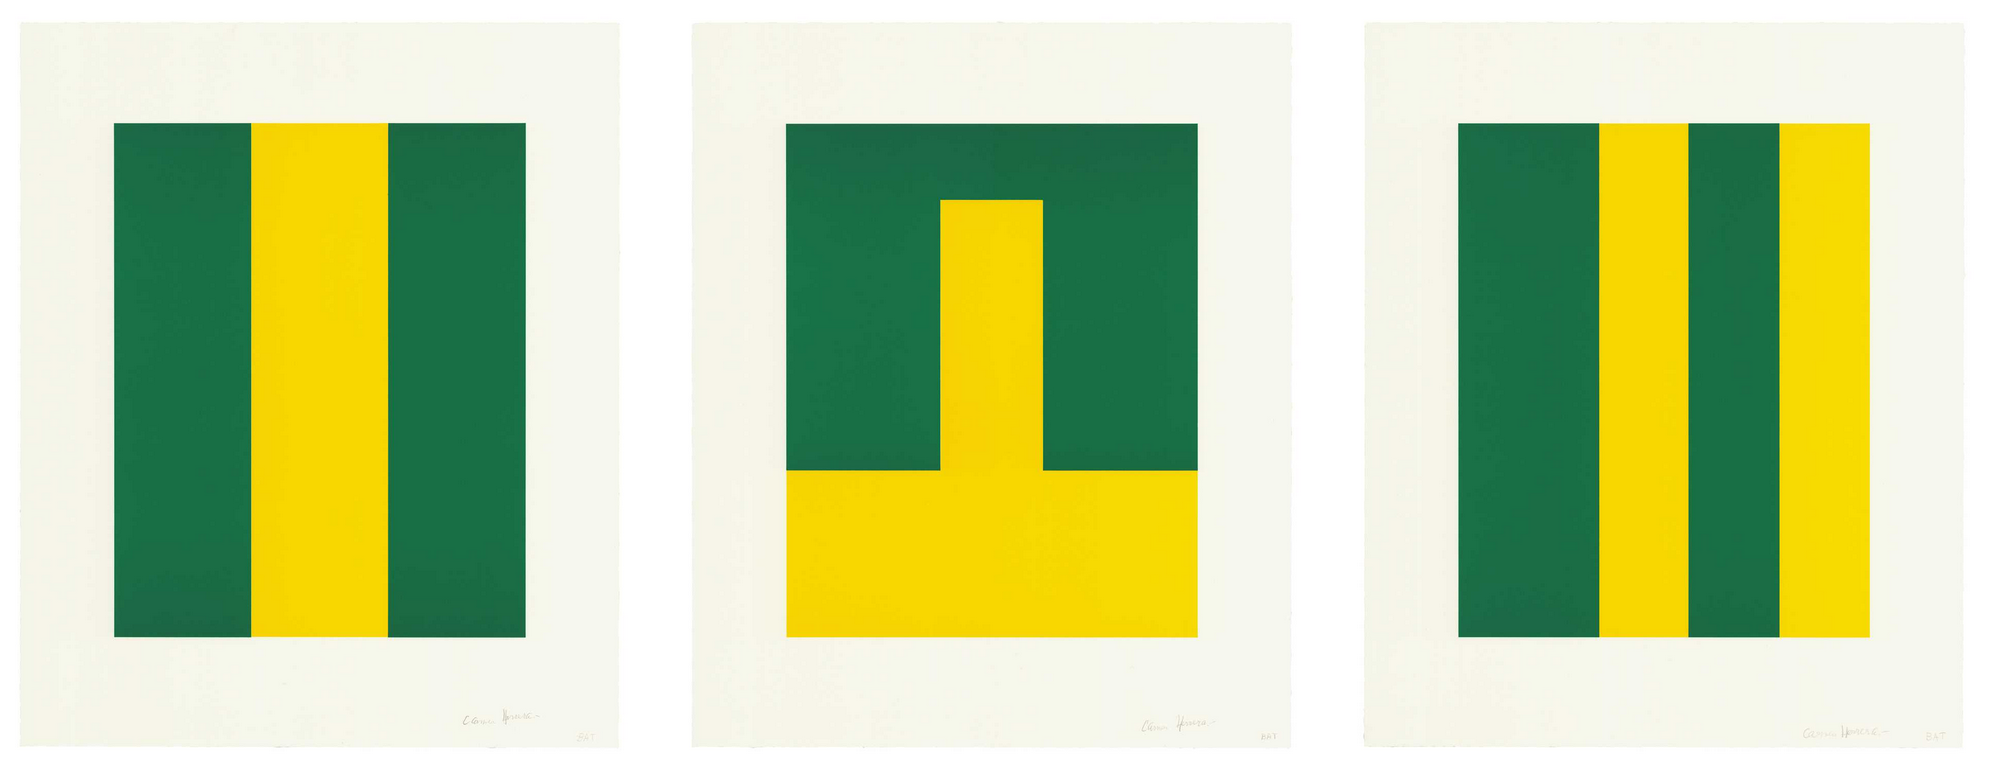 Carmen Herrera <br> <i>Verde y Amarillo, 2017</i> <br> Portfolio of three lithographs <br> 21 1/4 x 17 1/2 inches, each <br> Ed. 20 <br>